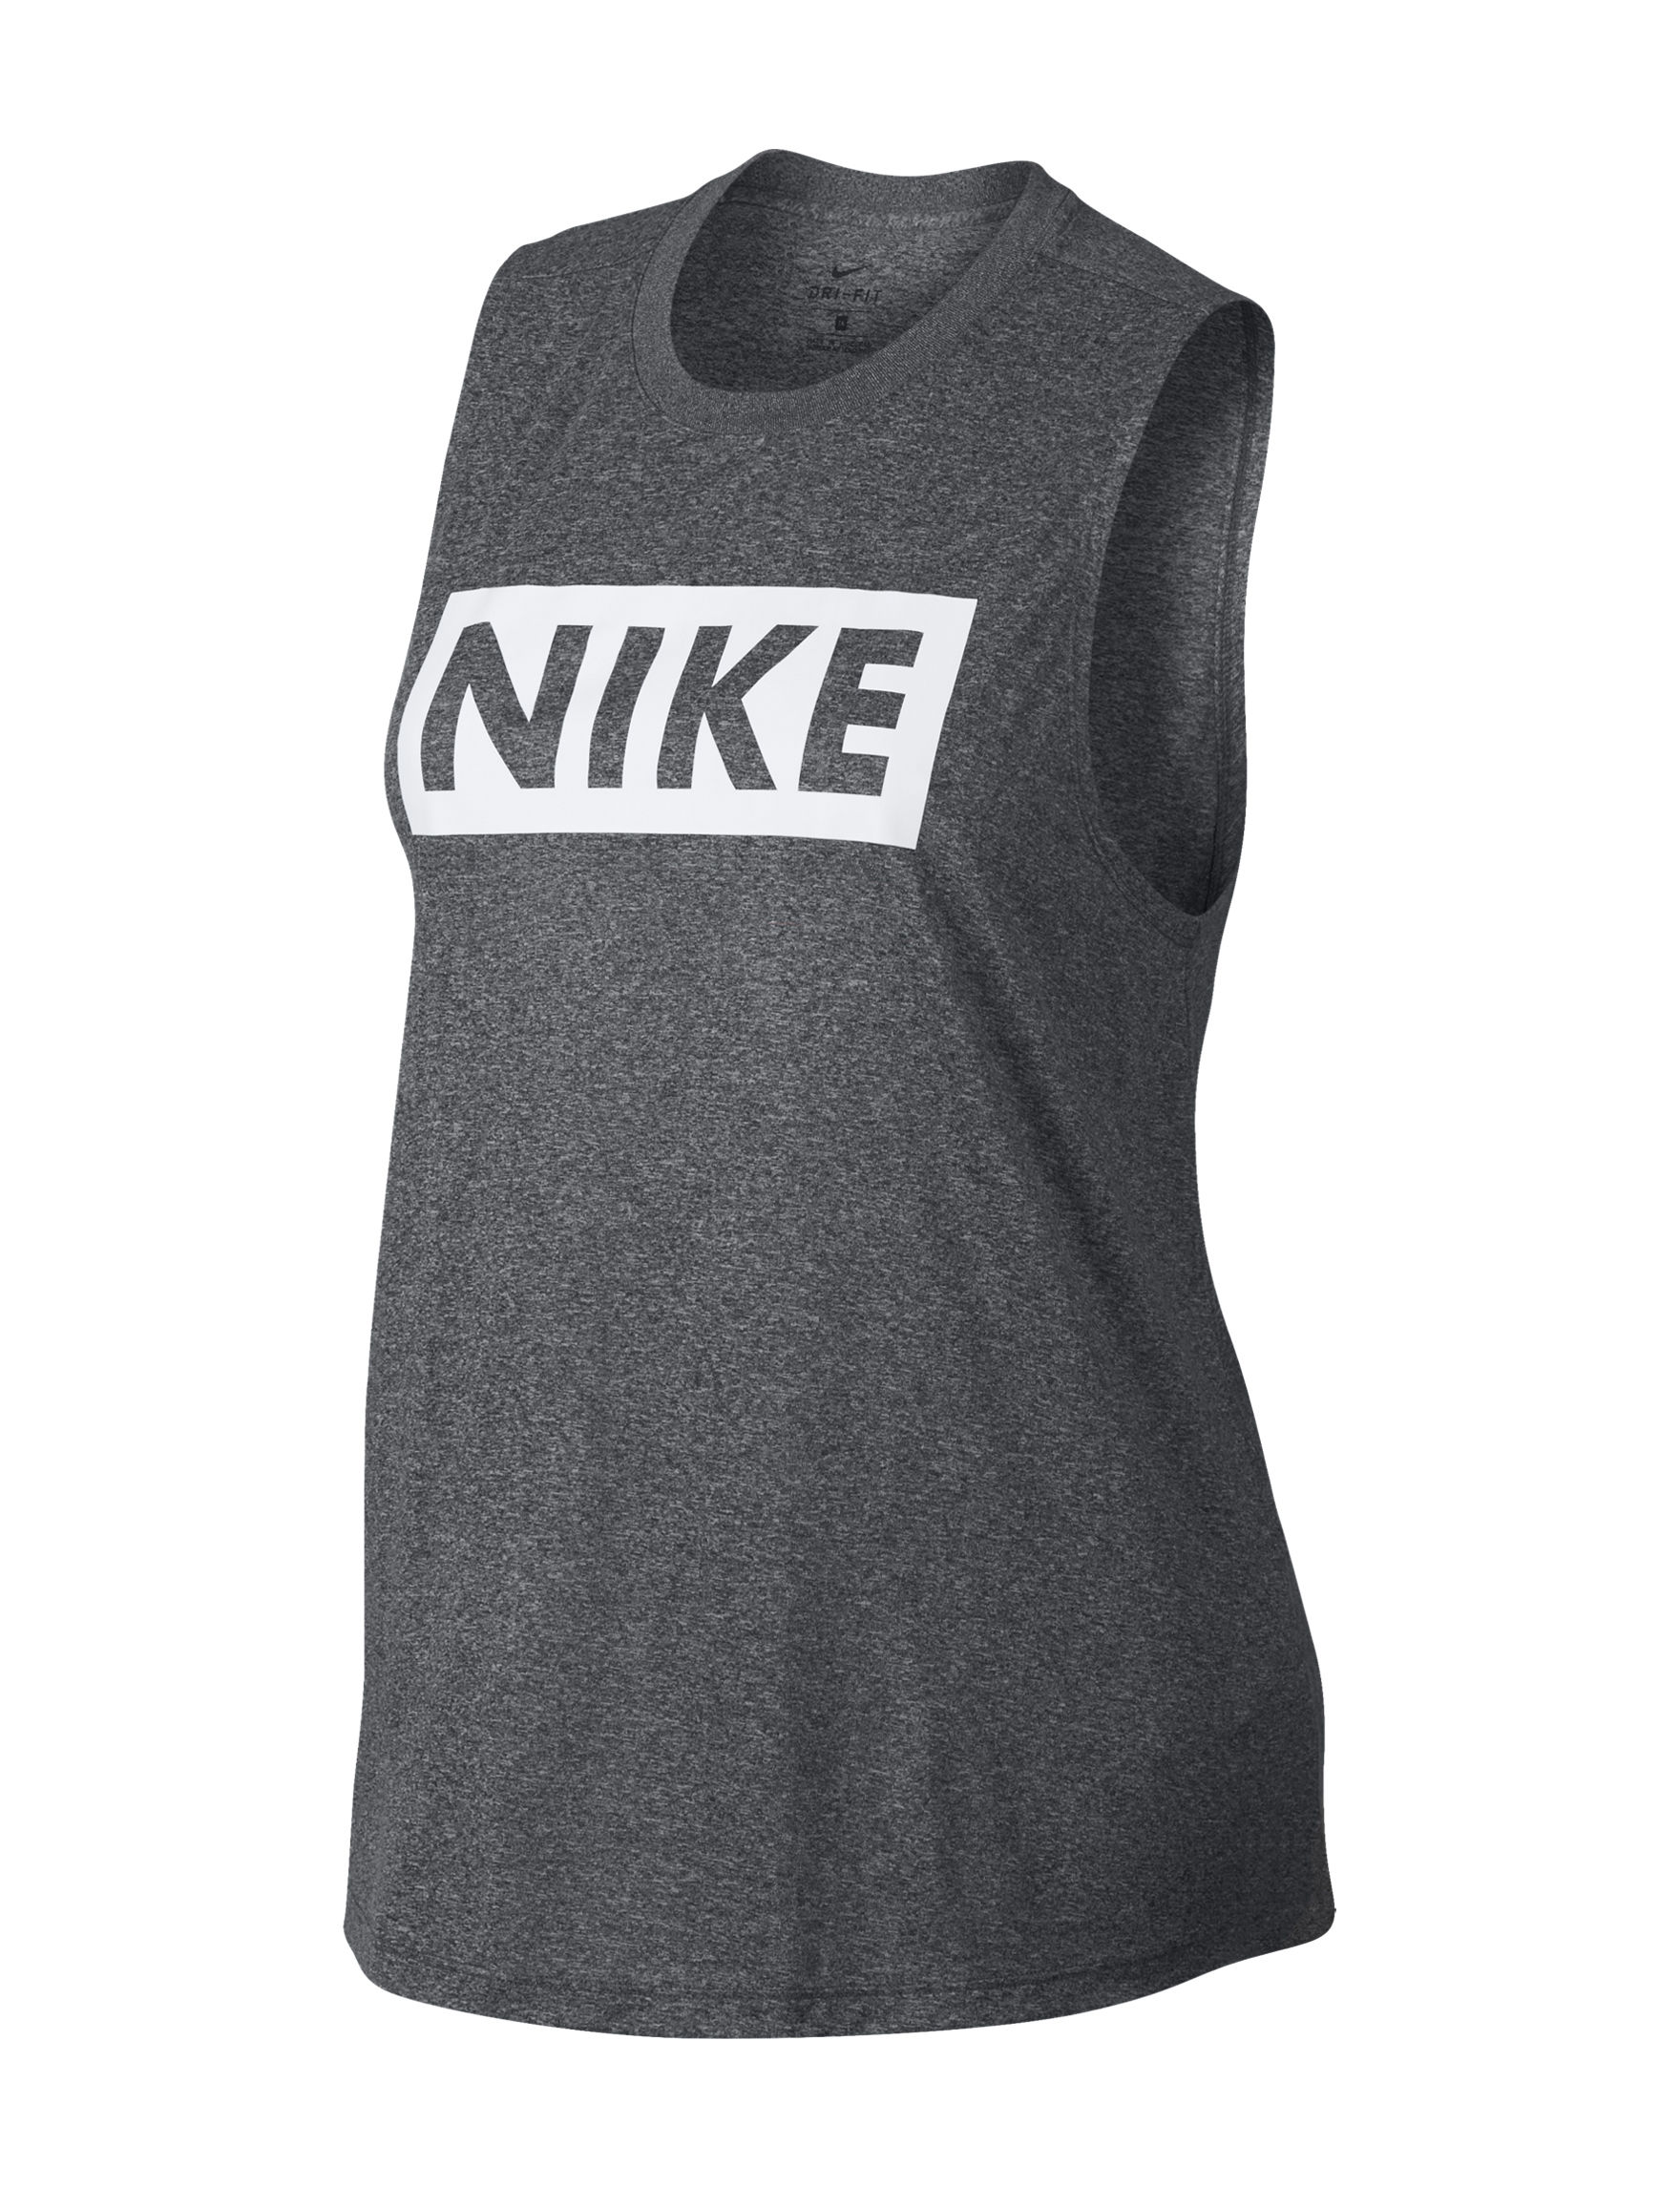 Nike Dark Grey Tees & Tanks